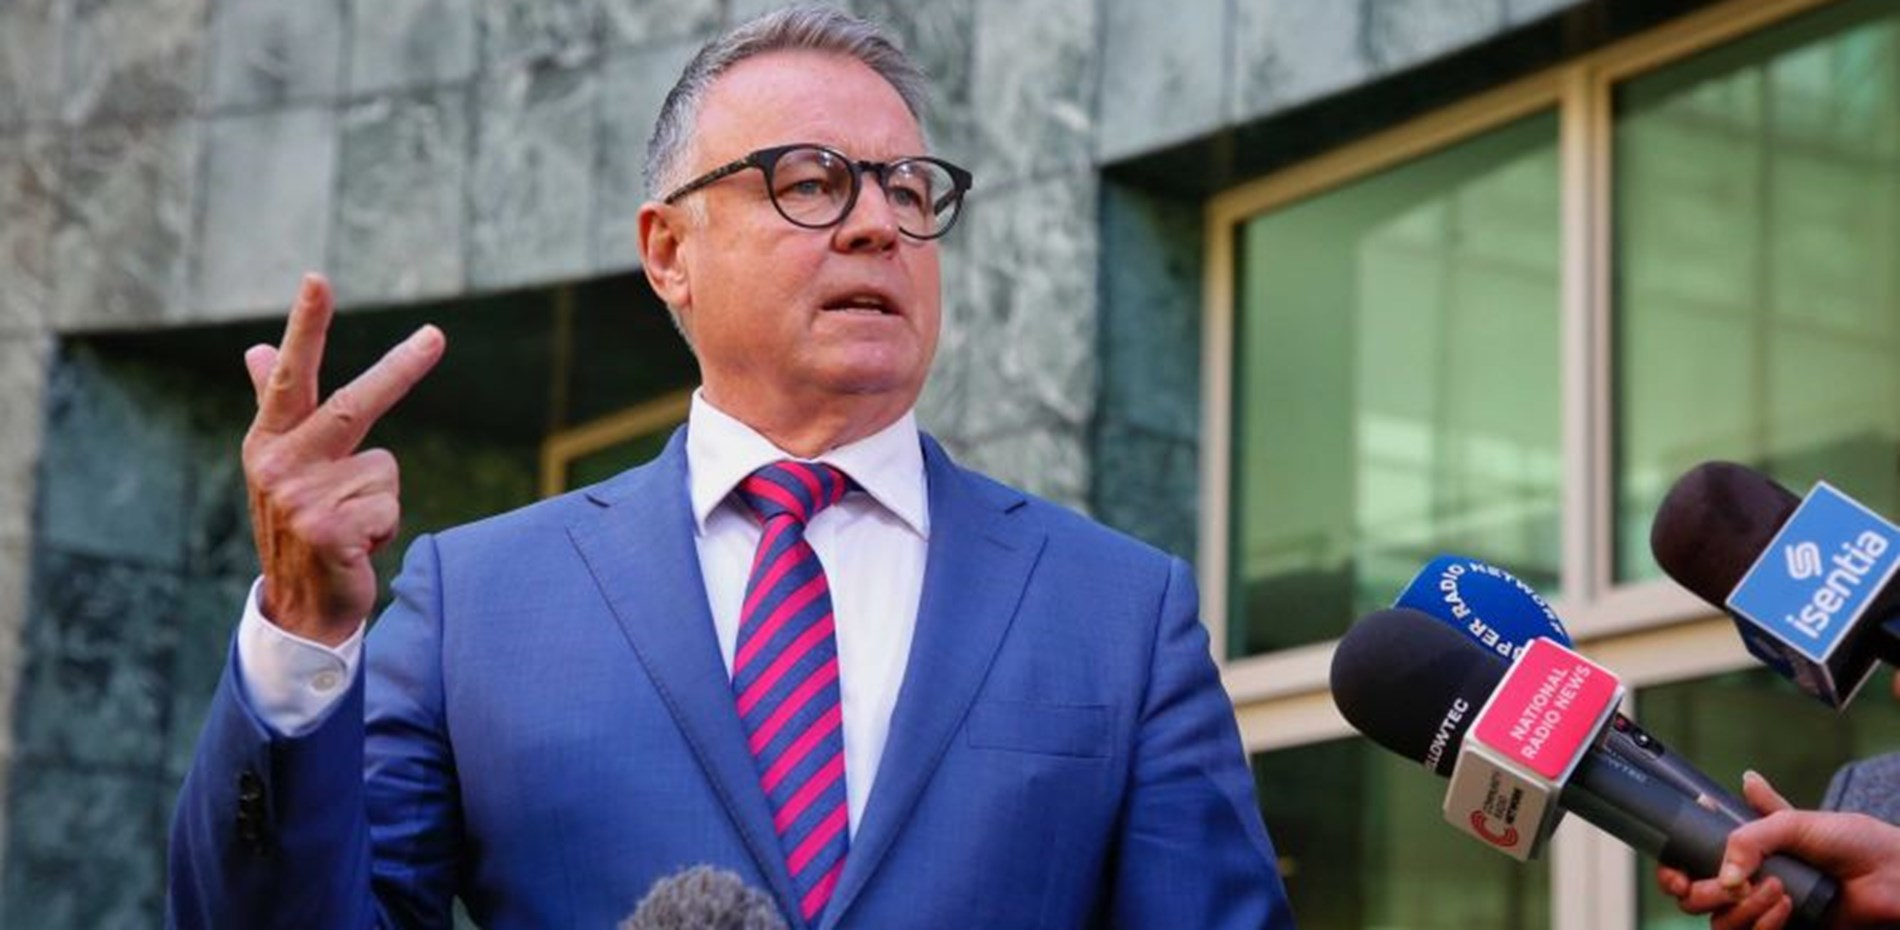 Opinion Piece - Labor Can't Forget It's traditional Base -  Wednesday, 11 November 2020 Main Image